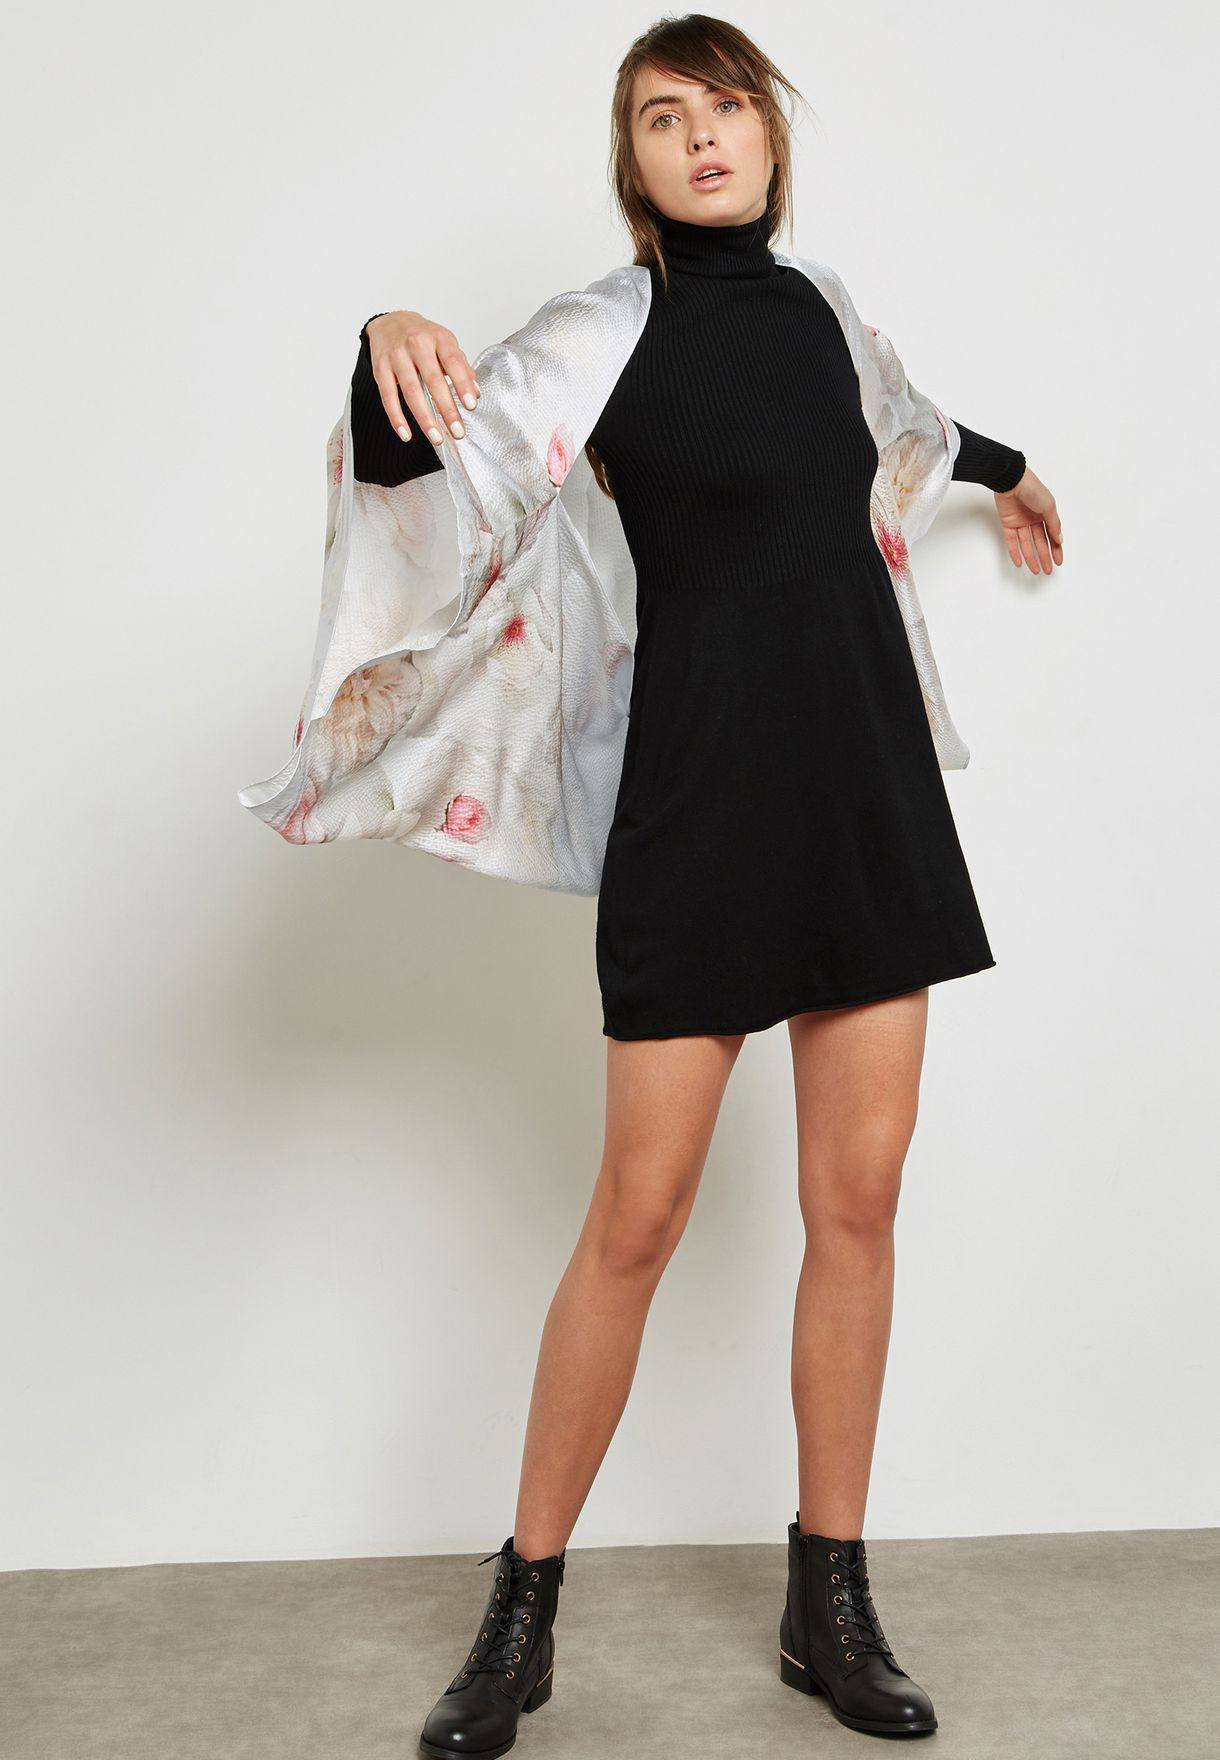 208a6b342127 Shop Ted baker prints Chelsea Cape Scarf 137290LT-GREY for ...